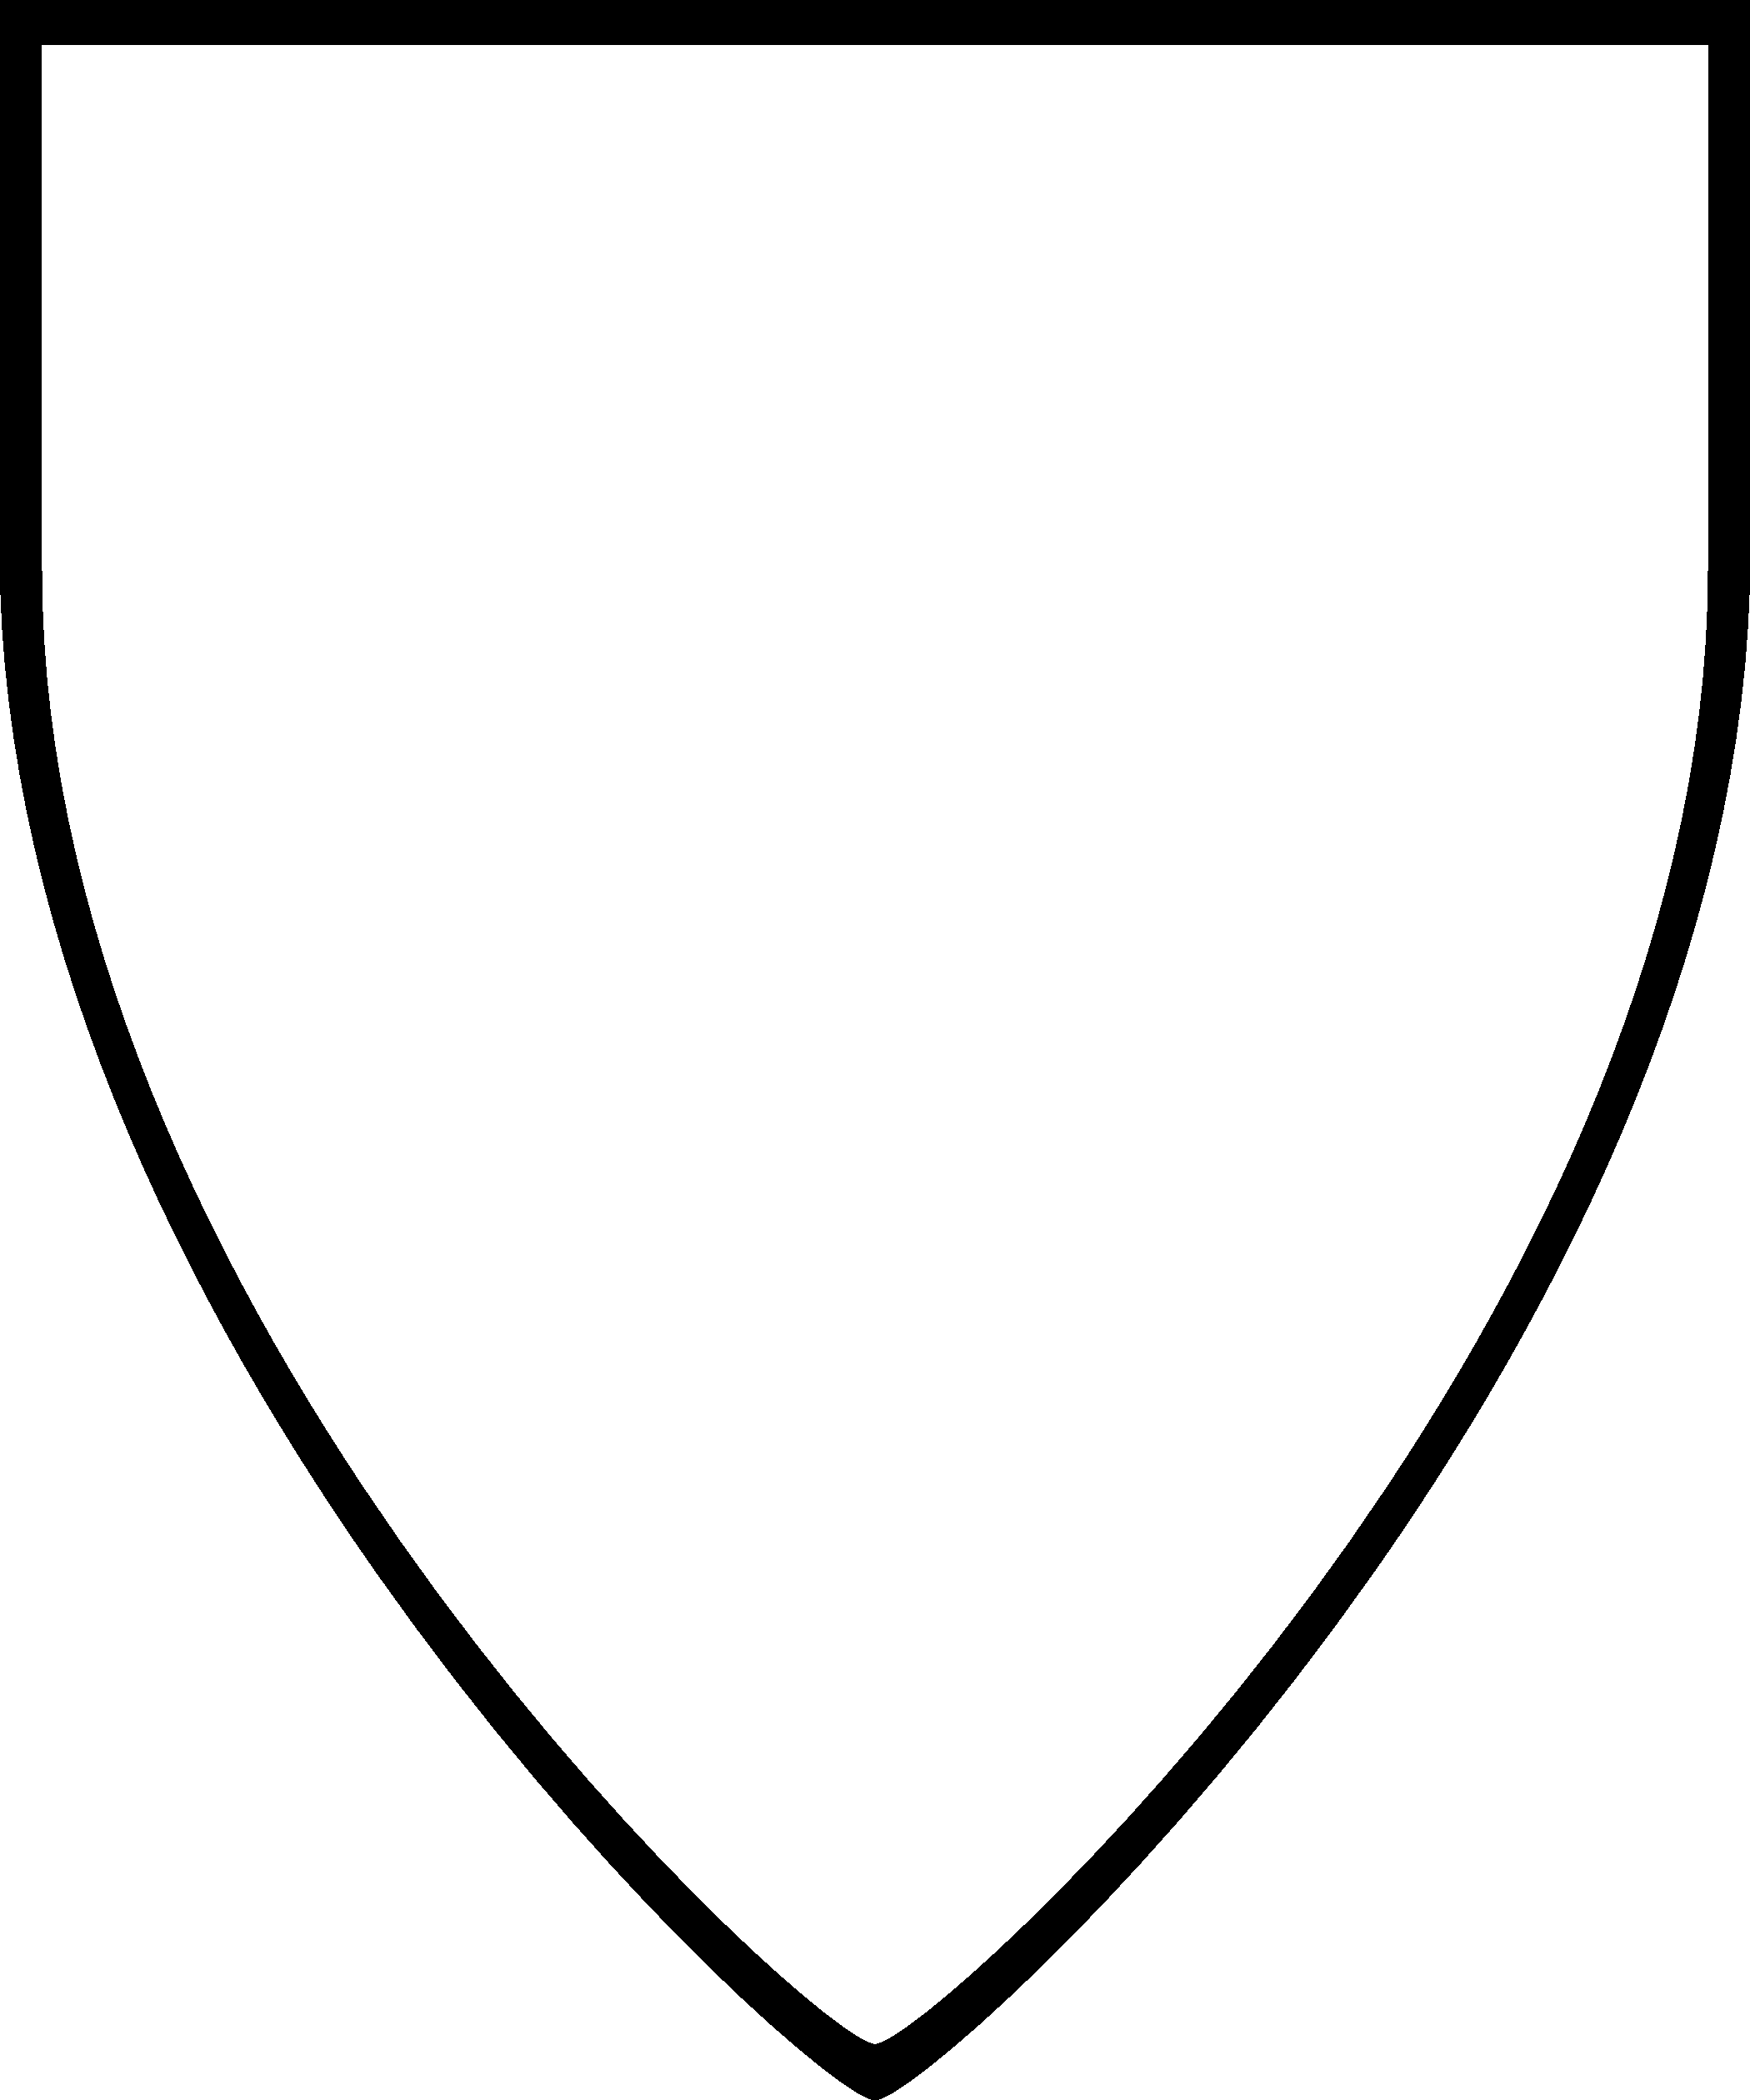 Shield drawing template at free for for Blank shield template printable